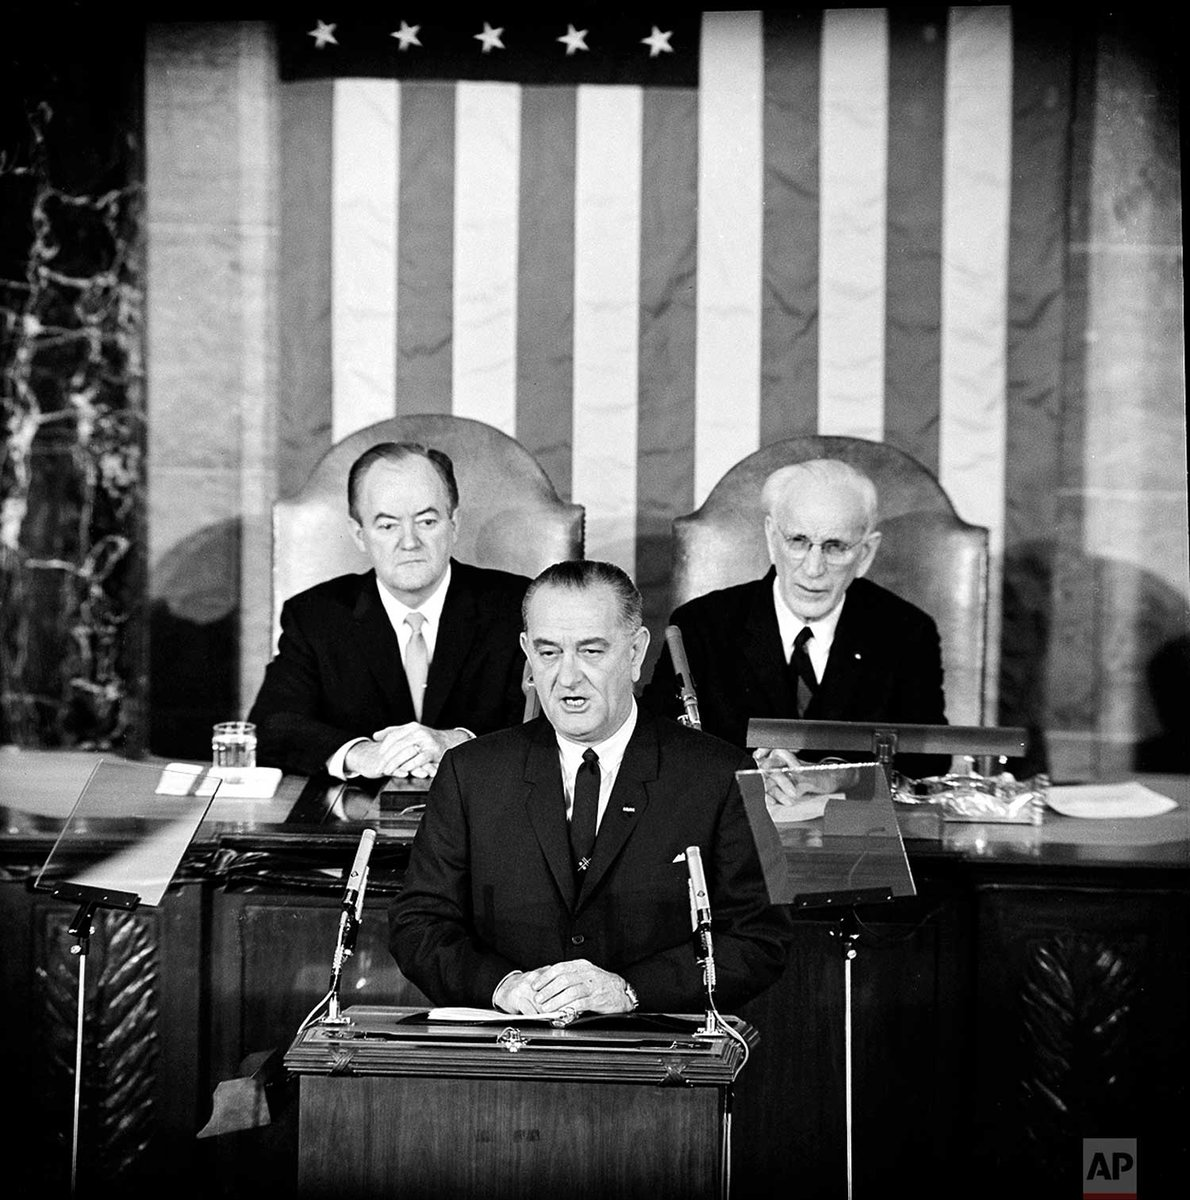 #OTD in 1965, U.S. President Lyndon B. Johnson addressed a joint session of Congress in Washington, D.C. to outline his proposals for voting rights for all citizens. Vice President Hubert Humphrey is at left and House Speaker John McCormack is at right.